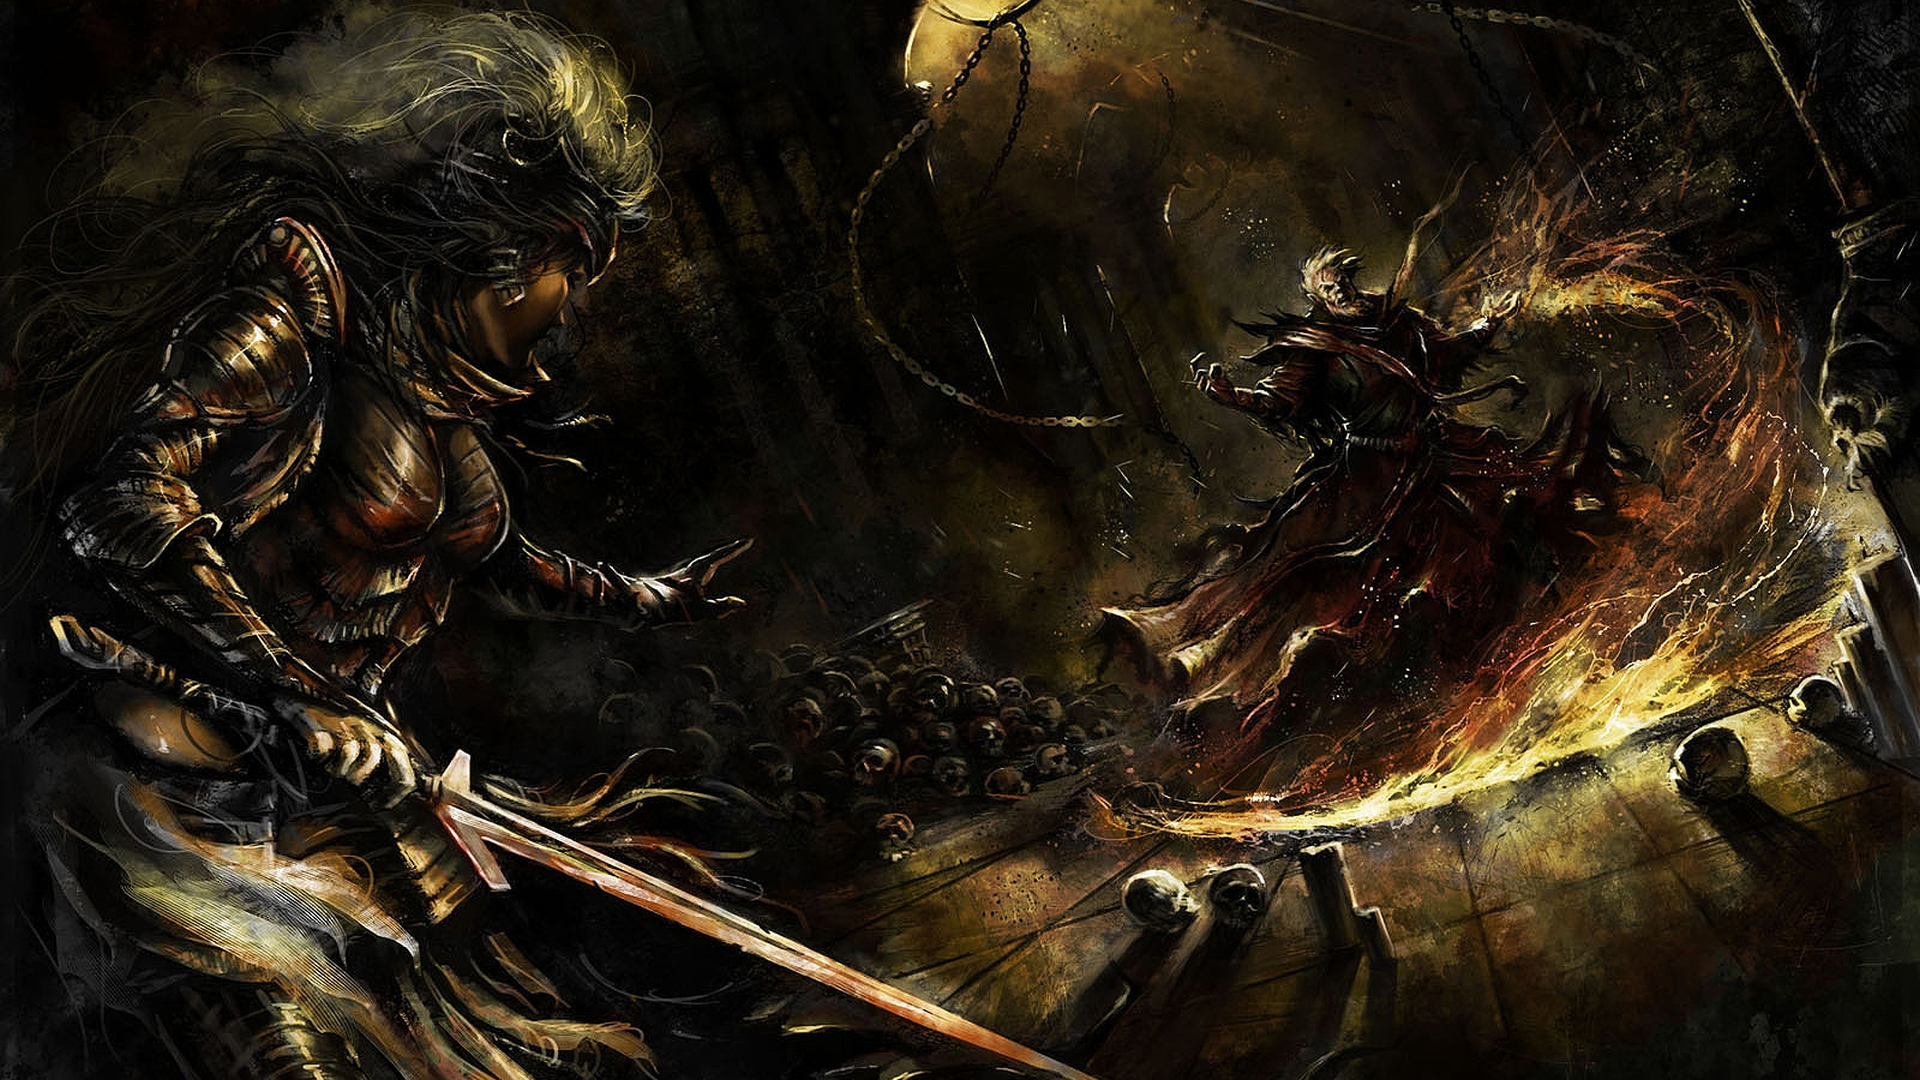 Epic Battle Wallpaper 1920x1080 Dark battle wallpaper 1920x1080